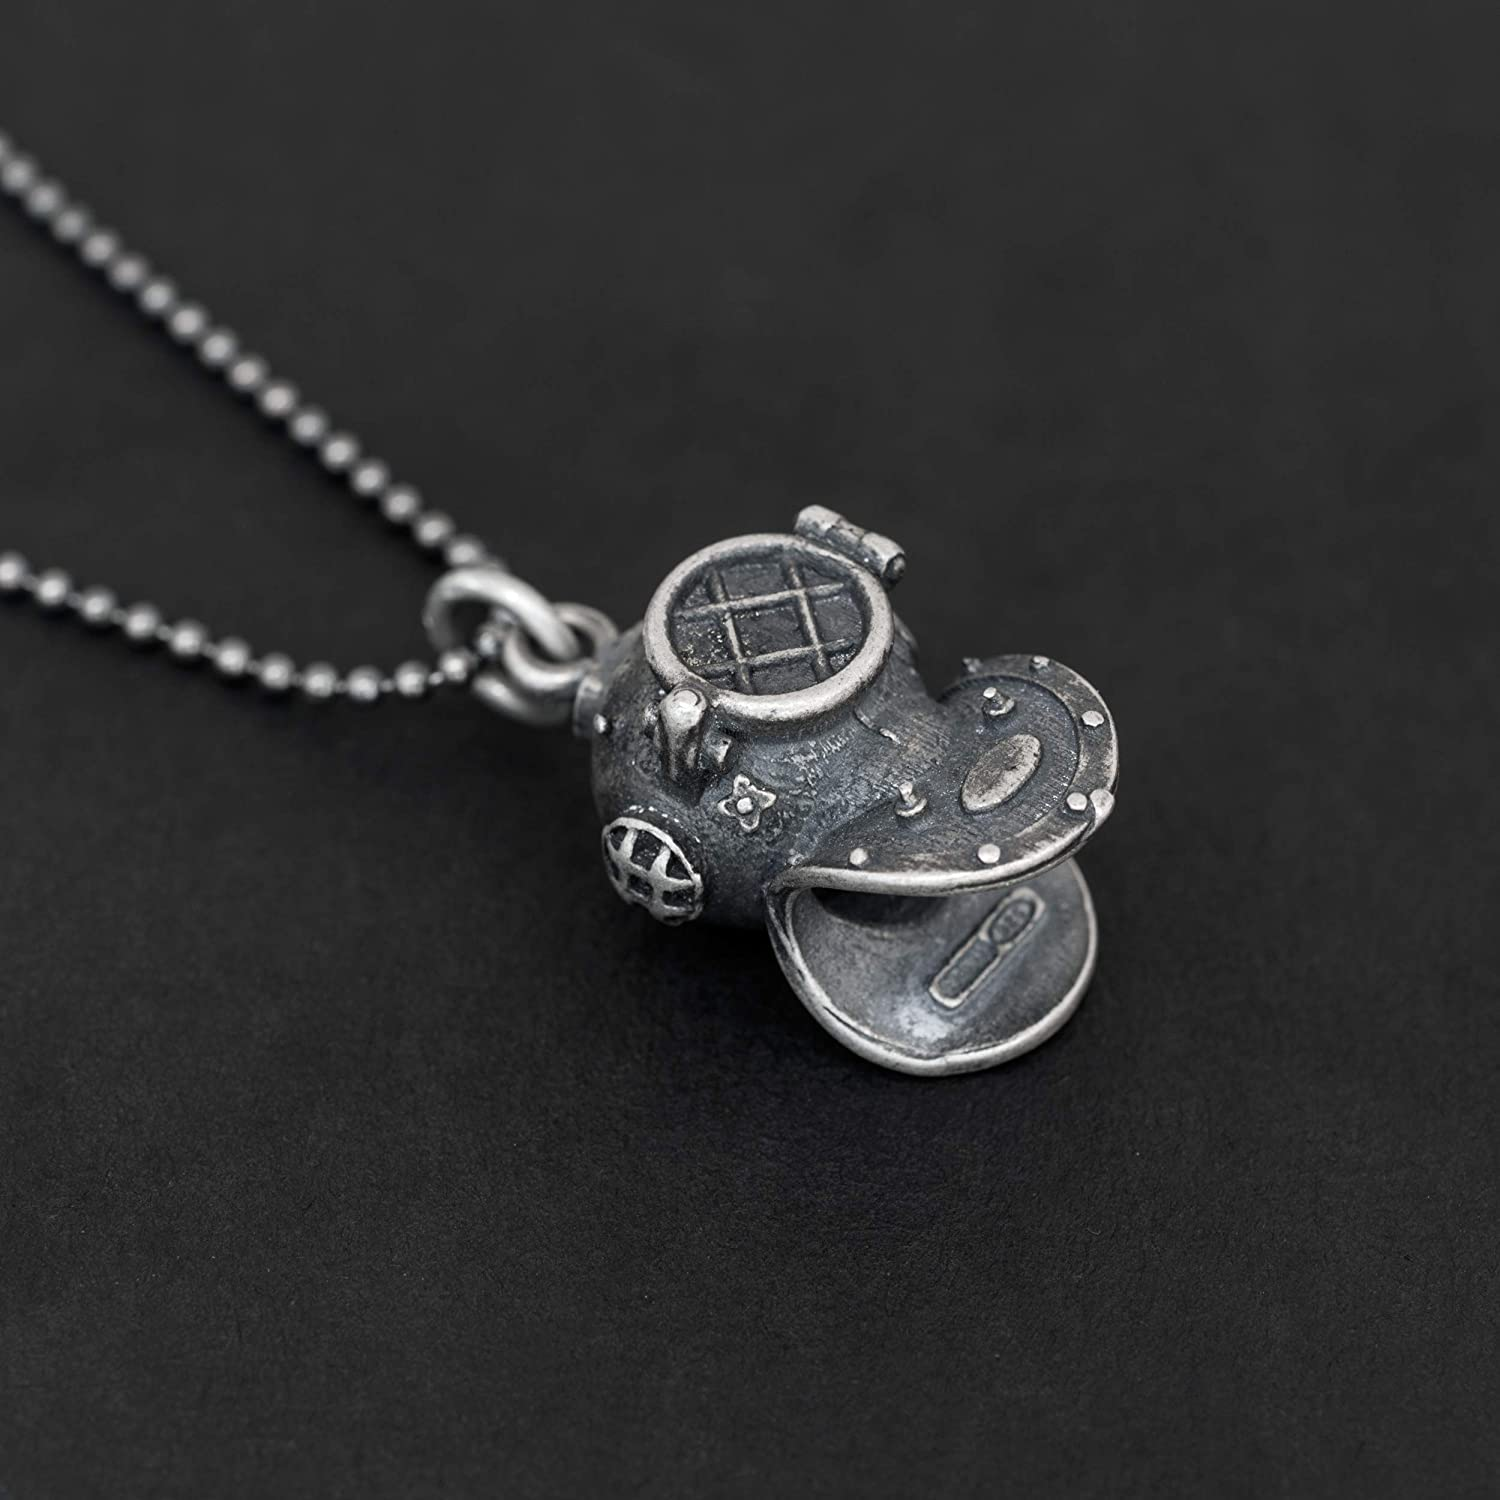 MADE IN ITALY toutes tailles Argent Sterling Chaîne Collier Sautoir Coeur Lien Collier